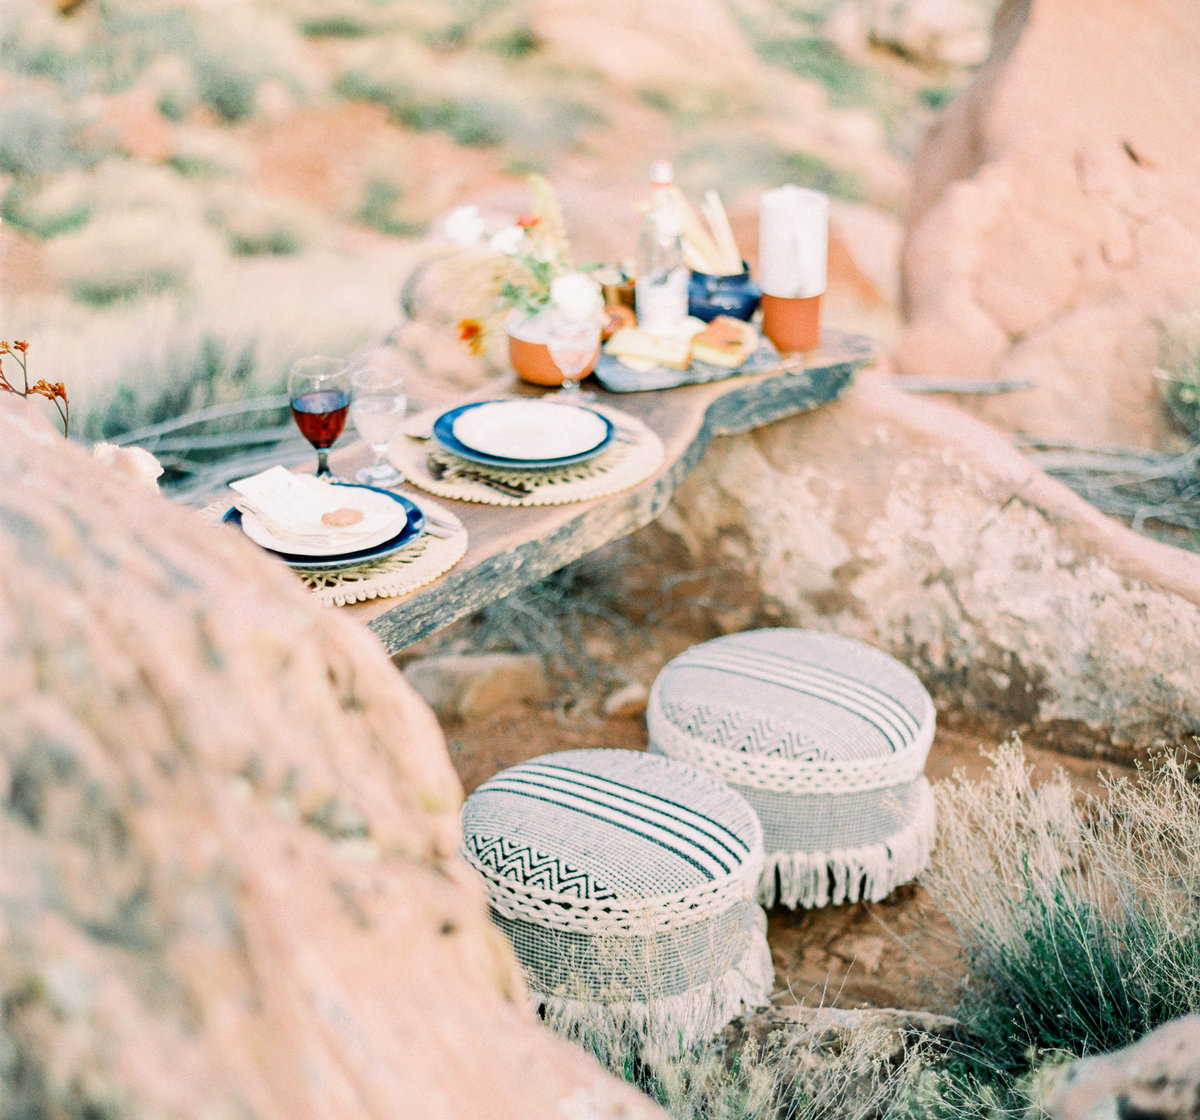 Wood slab table for intimate elopement dinner at Under Canvas in Zion National Park